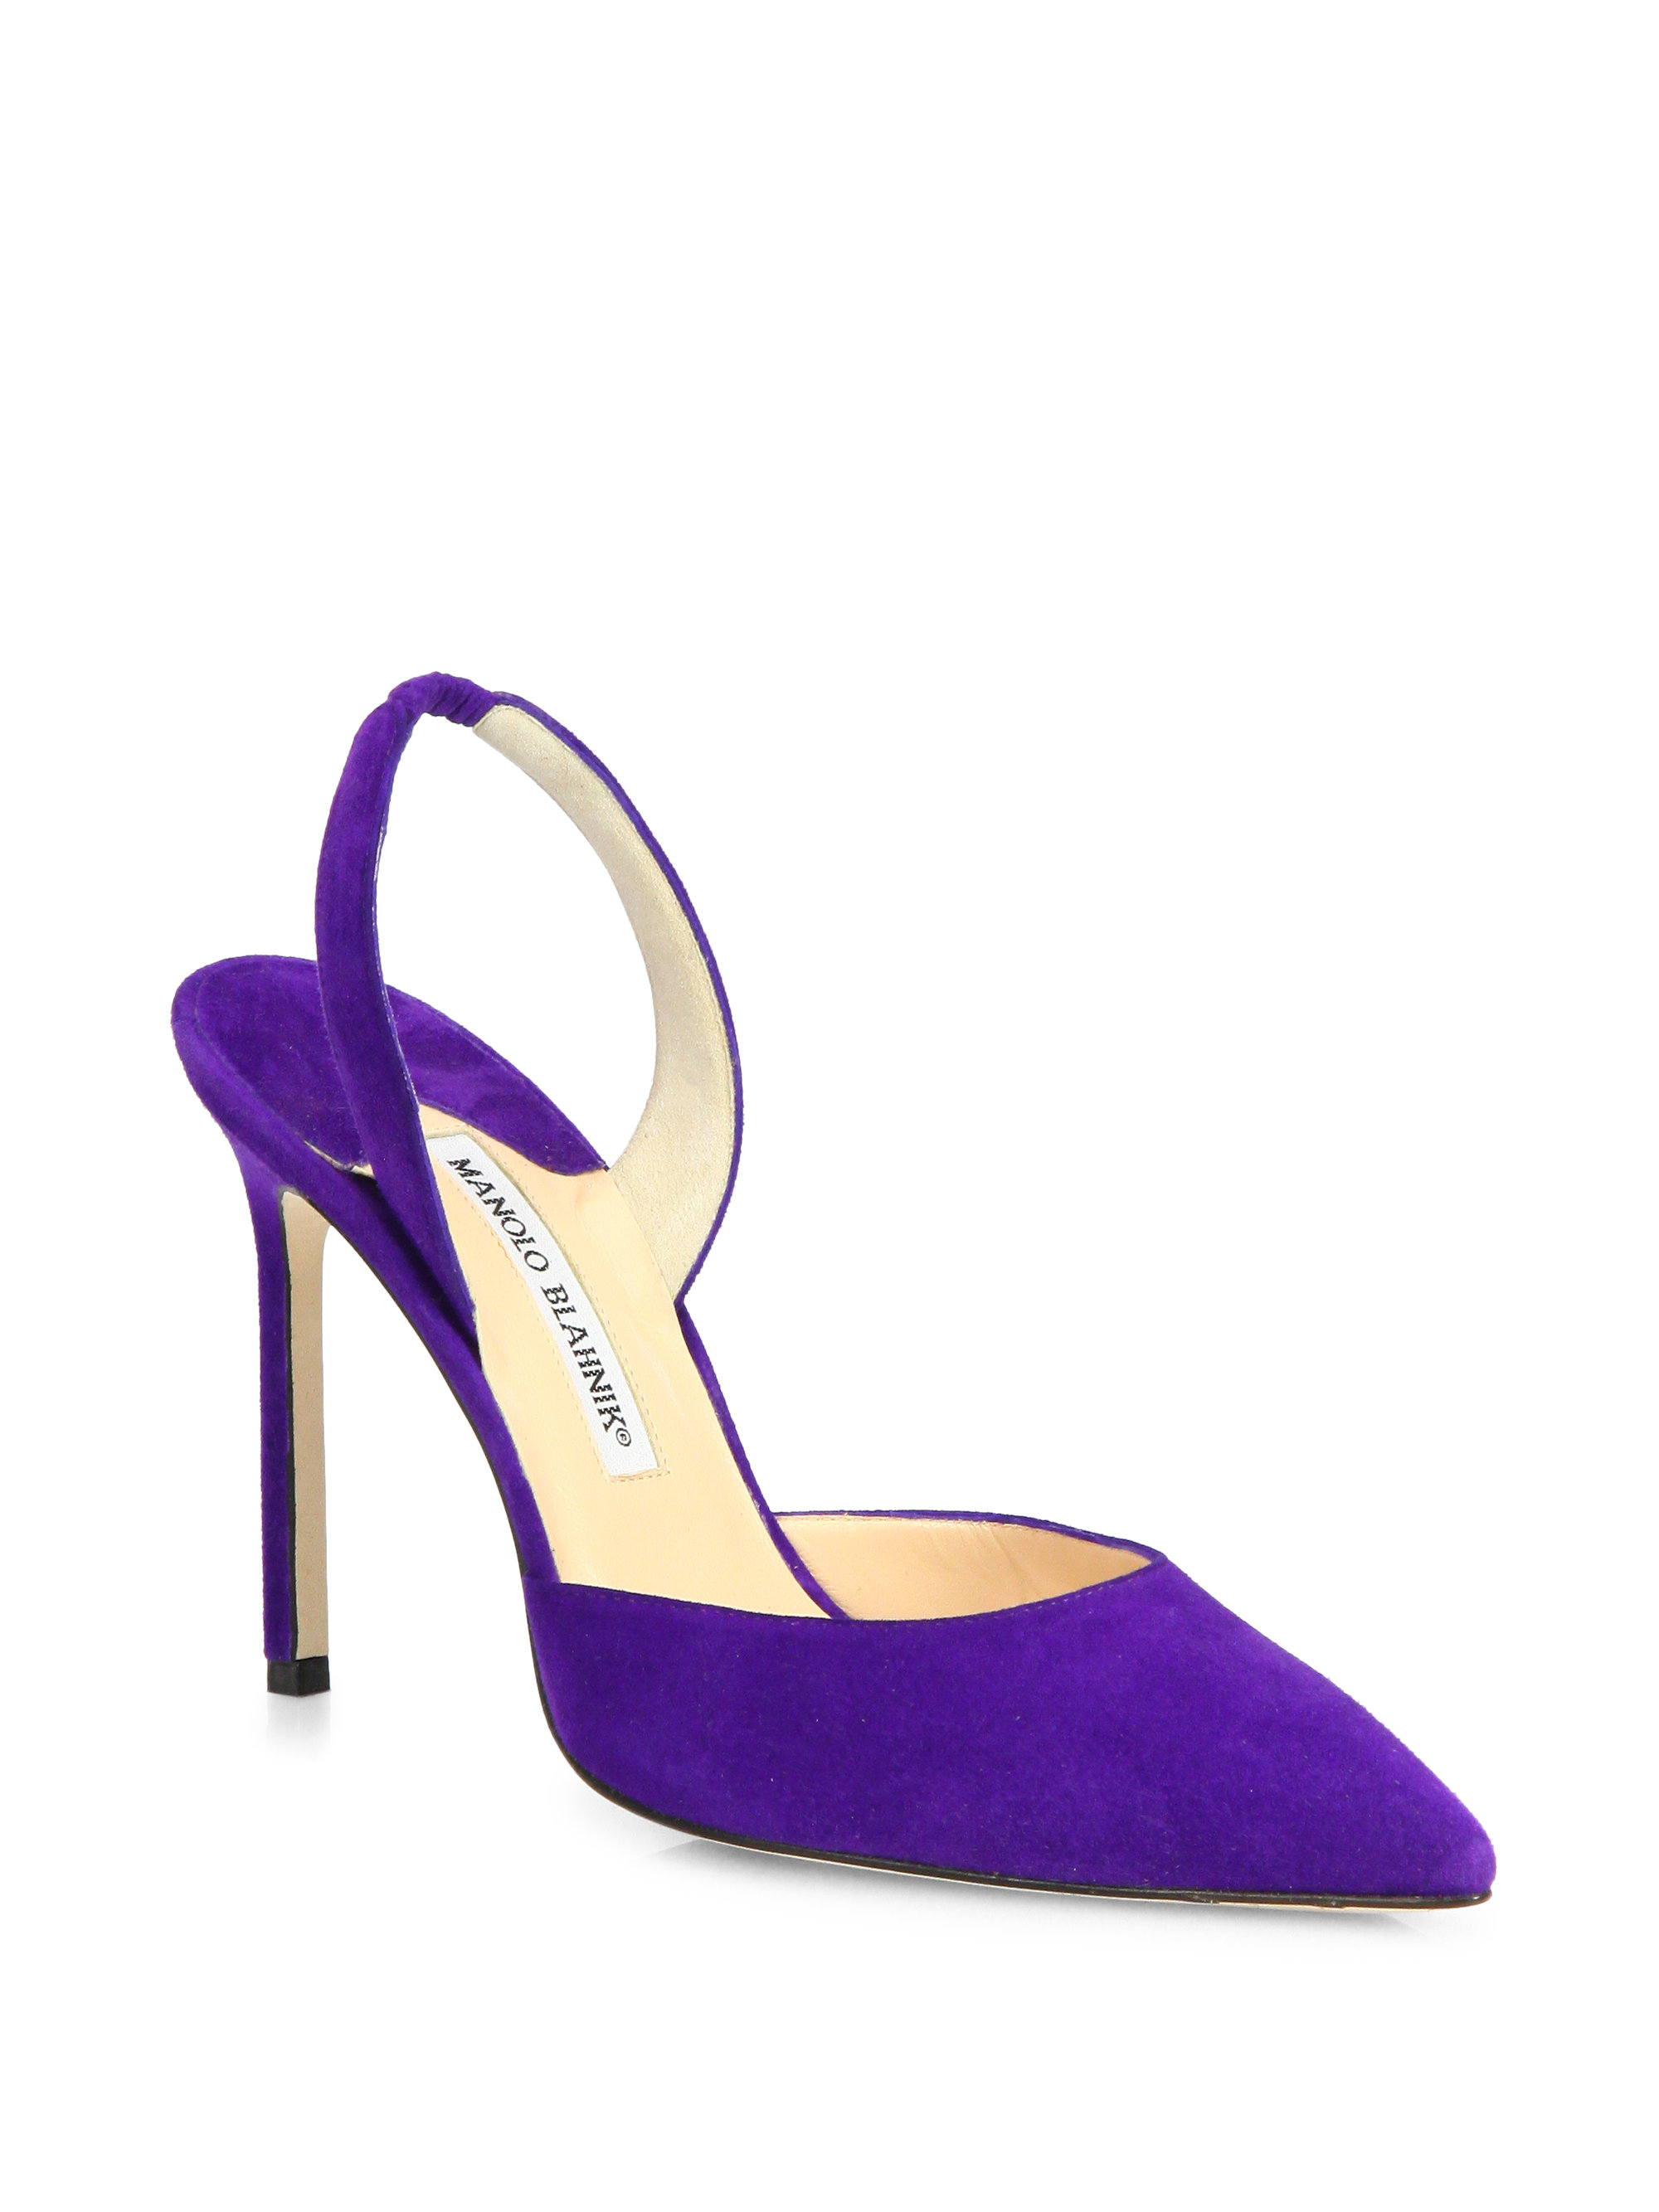 Lyst - Manolo blahnik Carolyne Suede Slingback Point Toe Pumps in ...